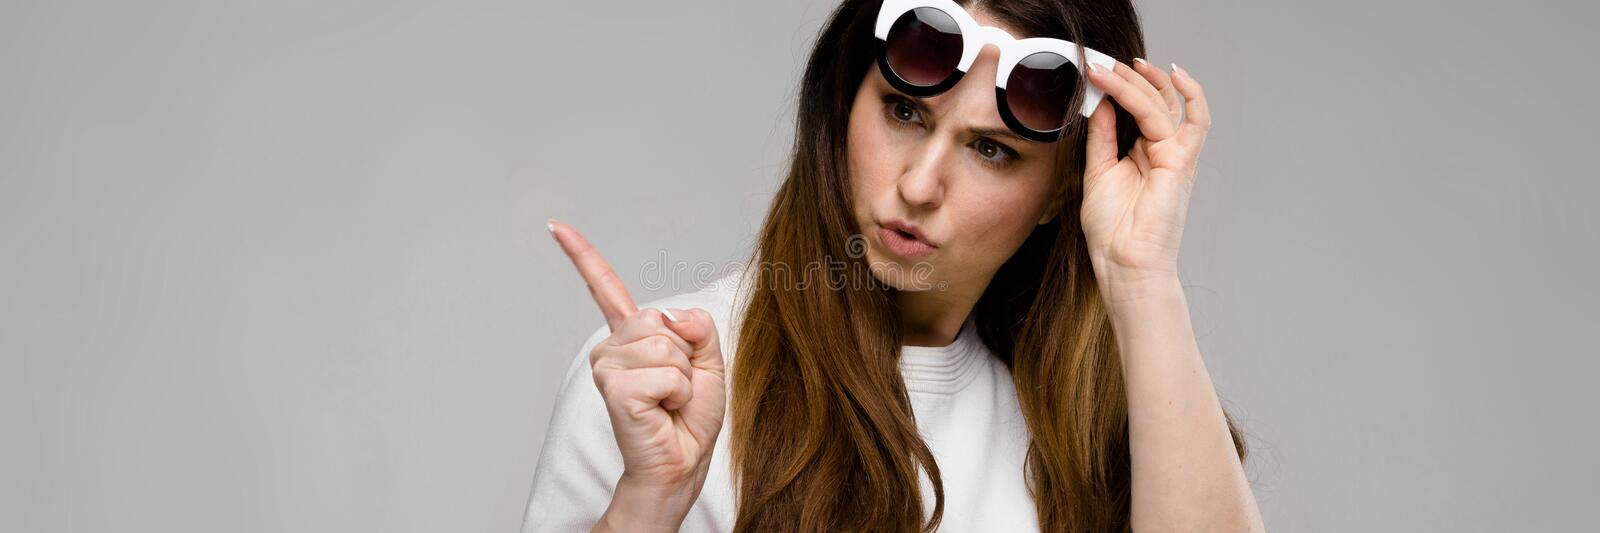 Portrait of emotional beautiful plus size model in sunglasses standing in studio looking in camera posing royalty free stock images